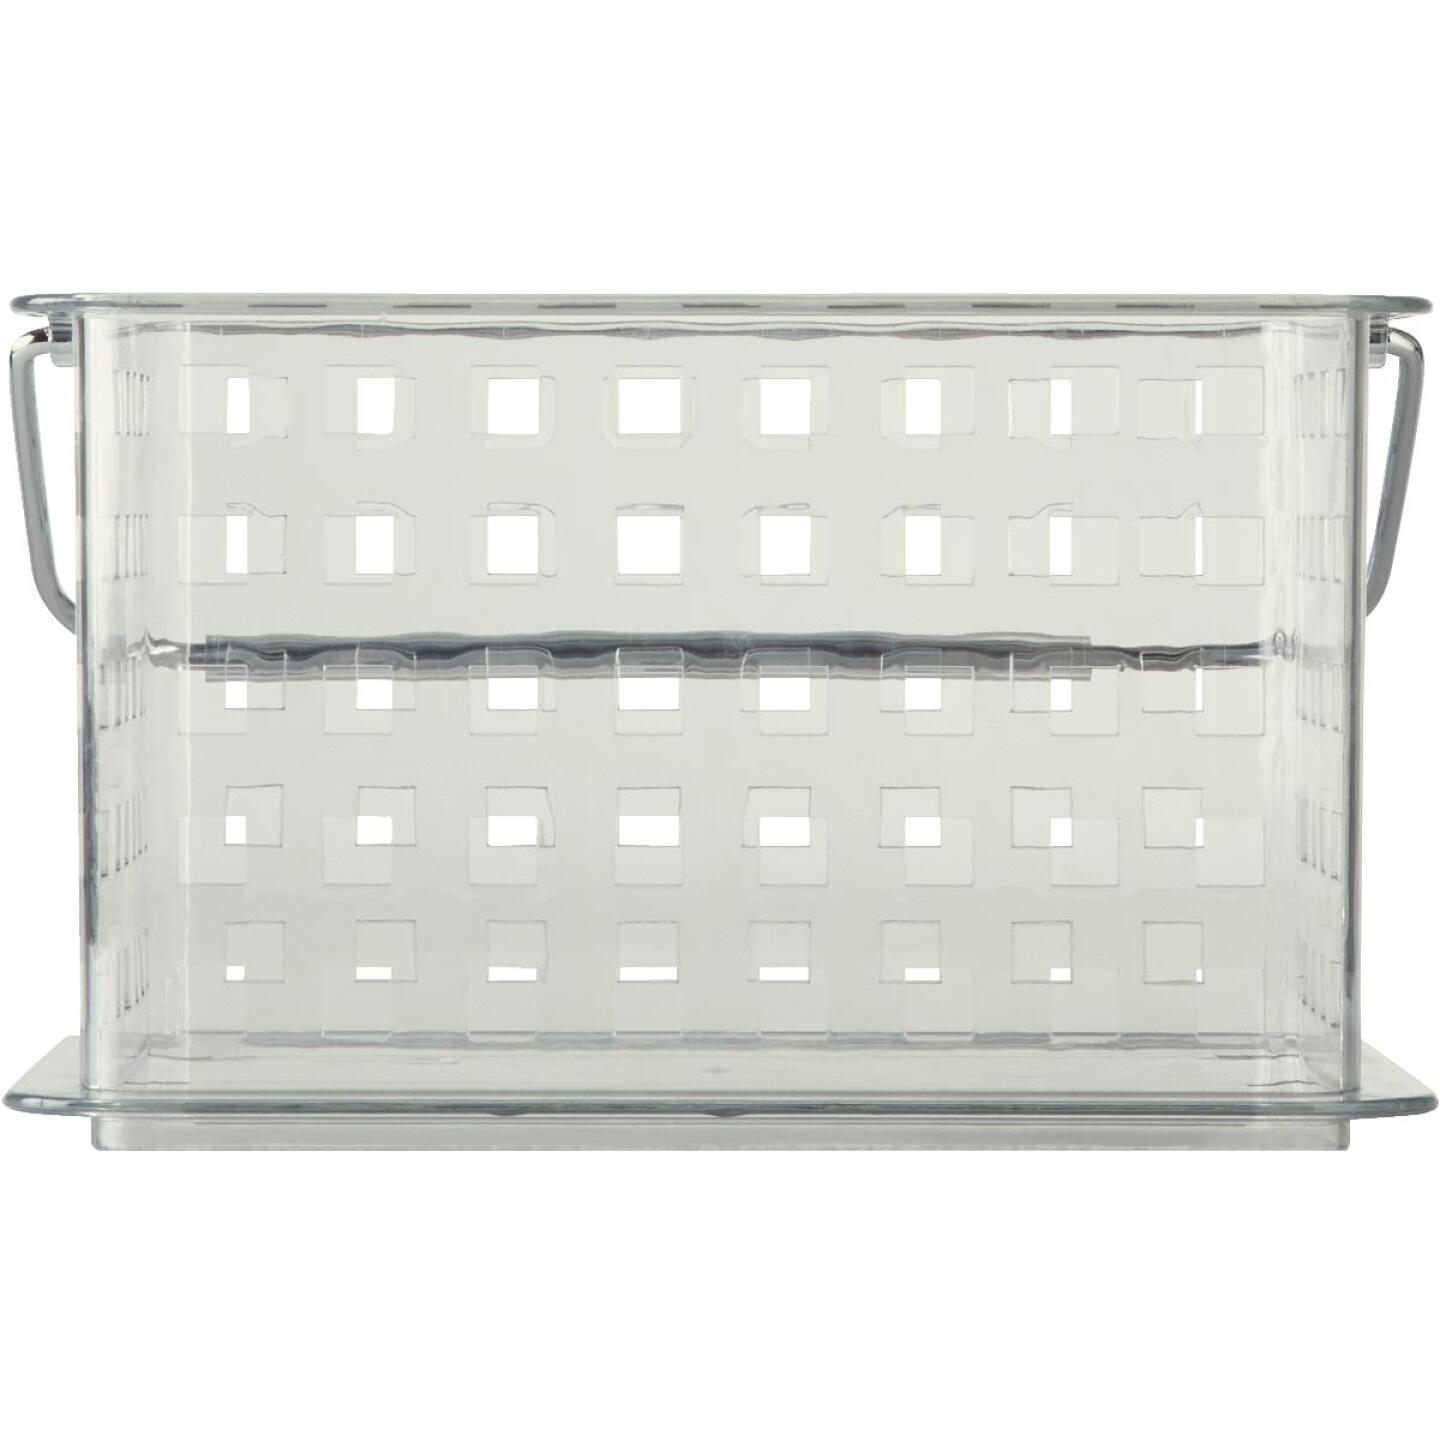 iDesign Clarity 8.8 In. L.x 6.9 In. H. x 5.3 In. D. Plastic Stackable Storage Basket Image 3